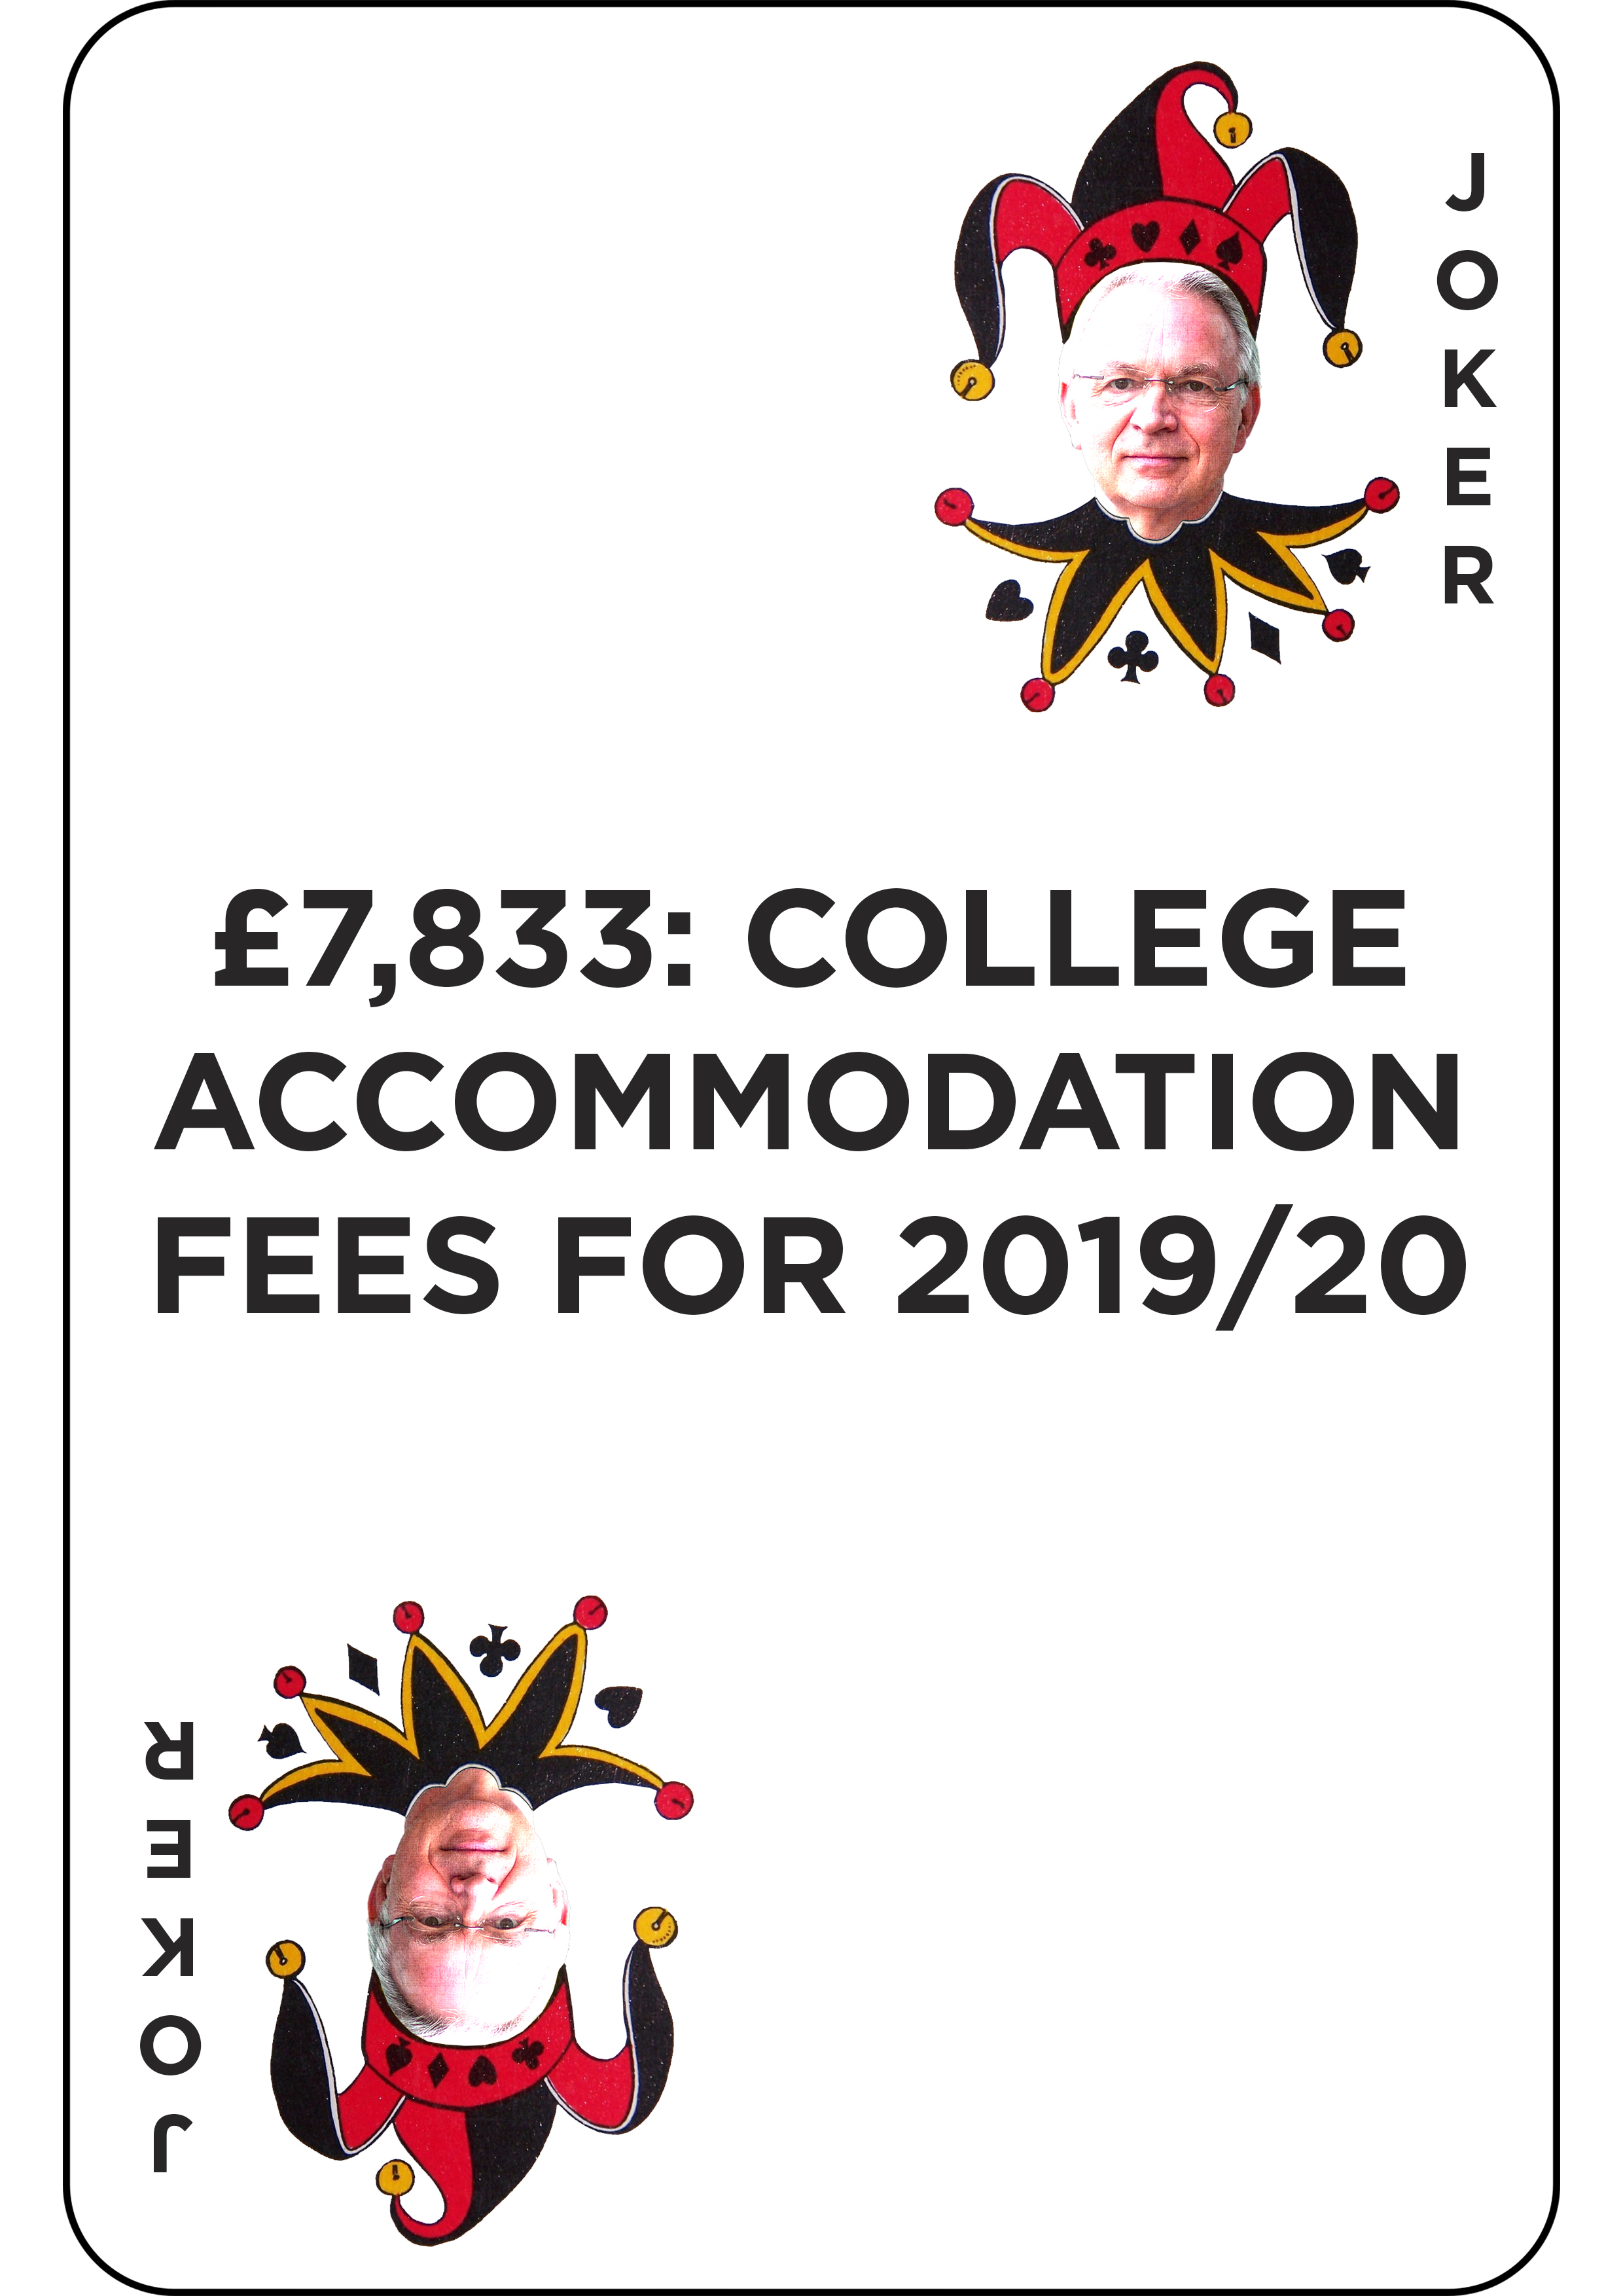 £7,883: college accommodation fees for 2019/20